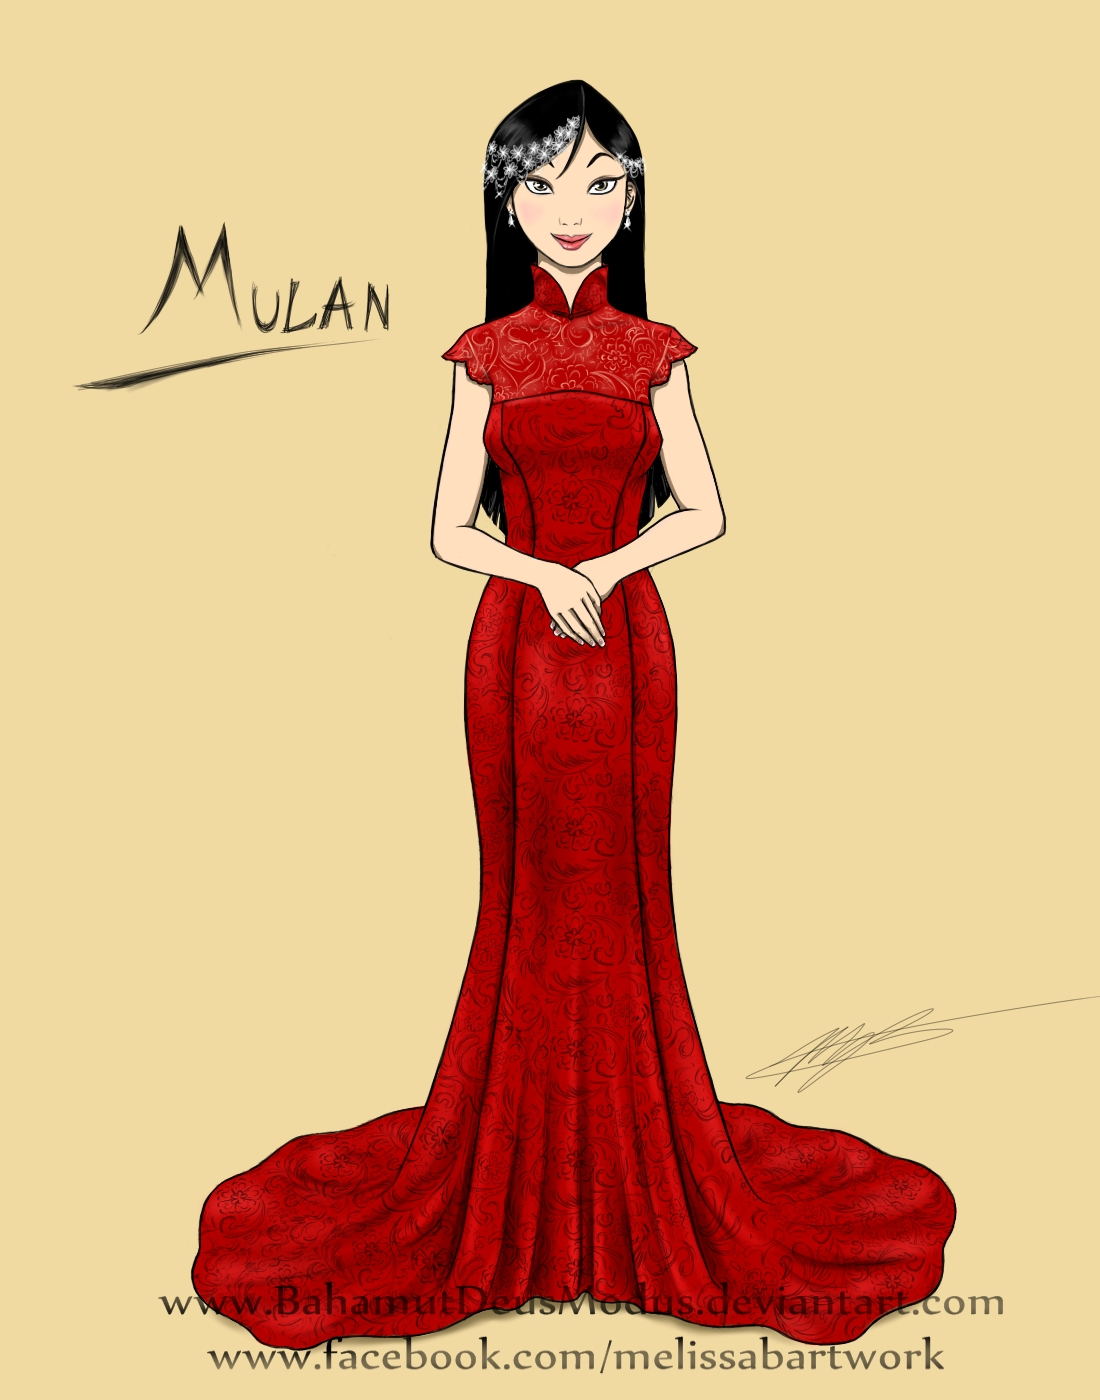 Mulan Wedding Dress HD Wallpaper Background Images 1100x1400